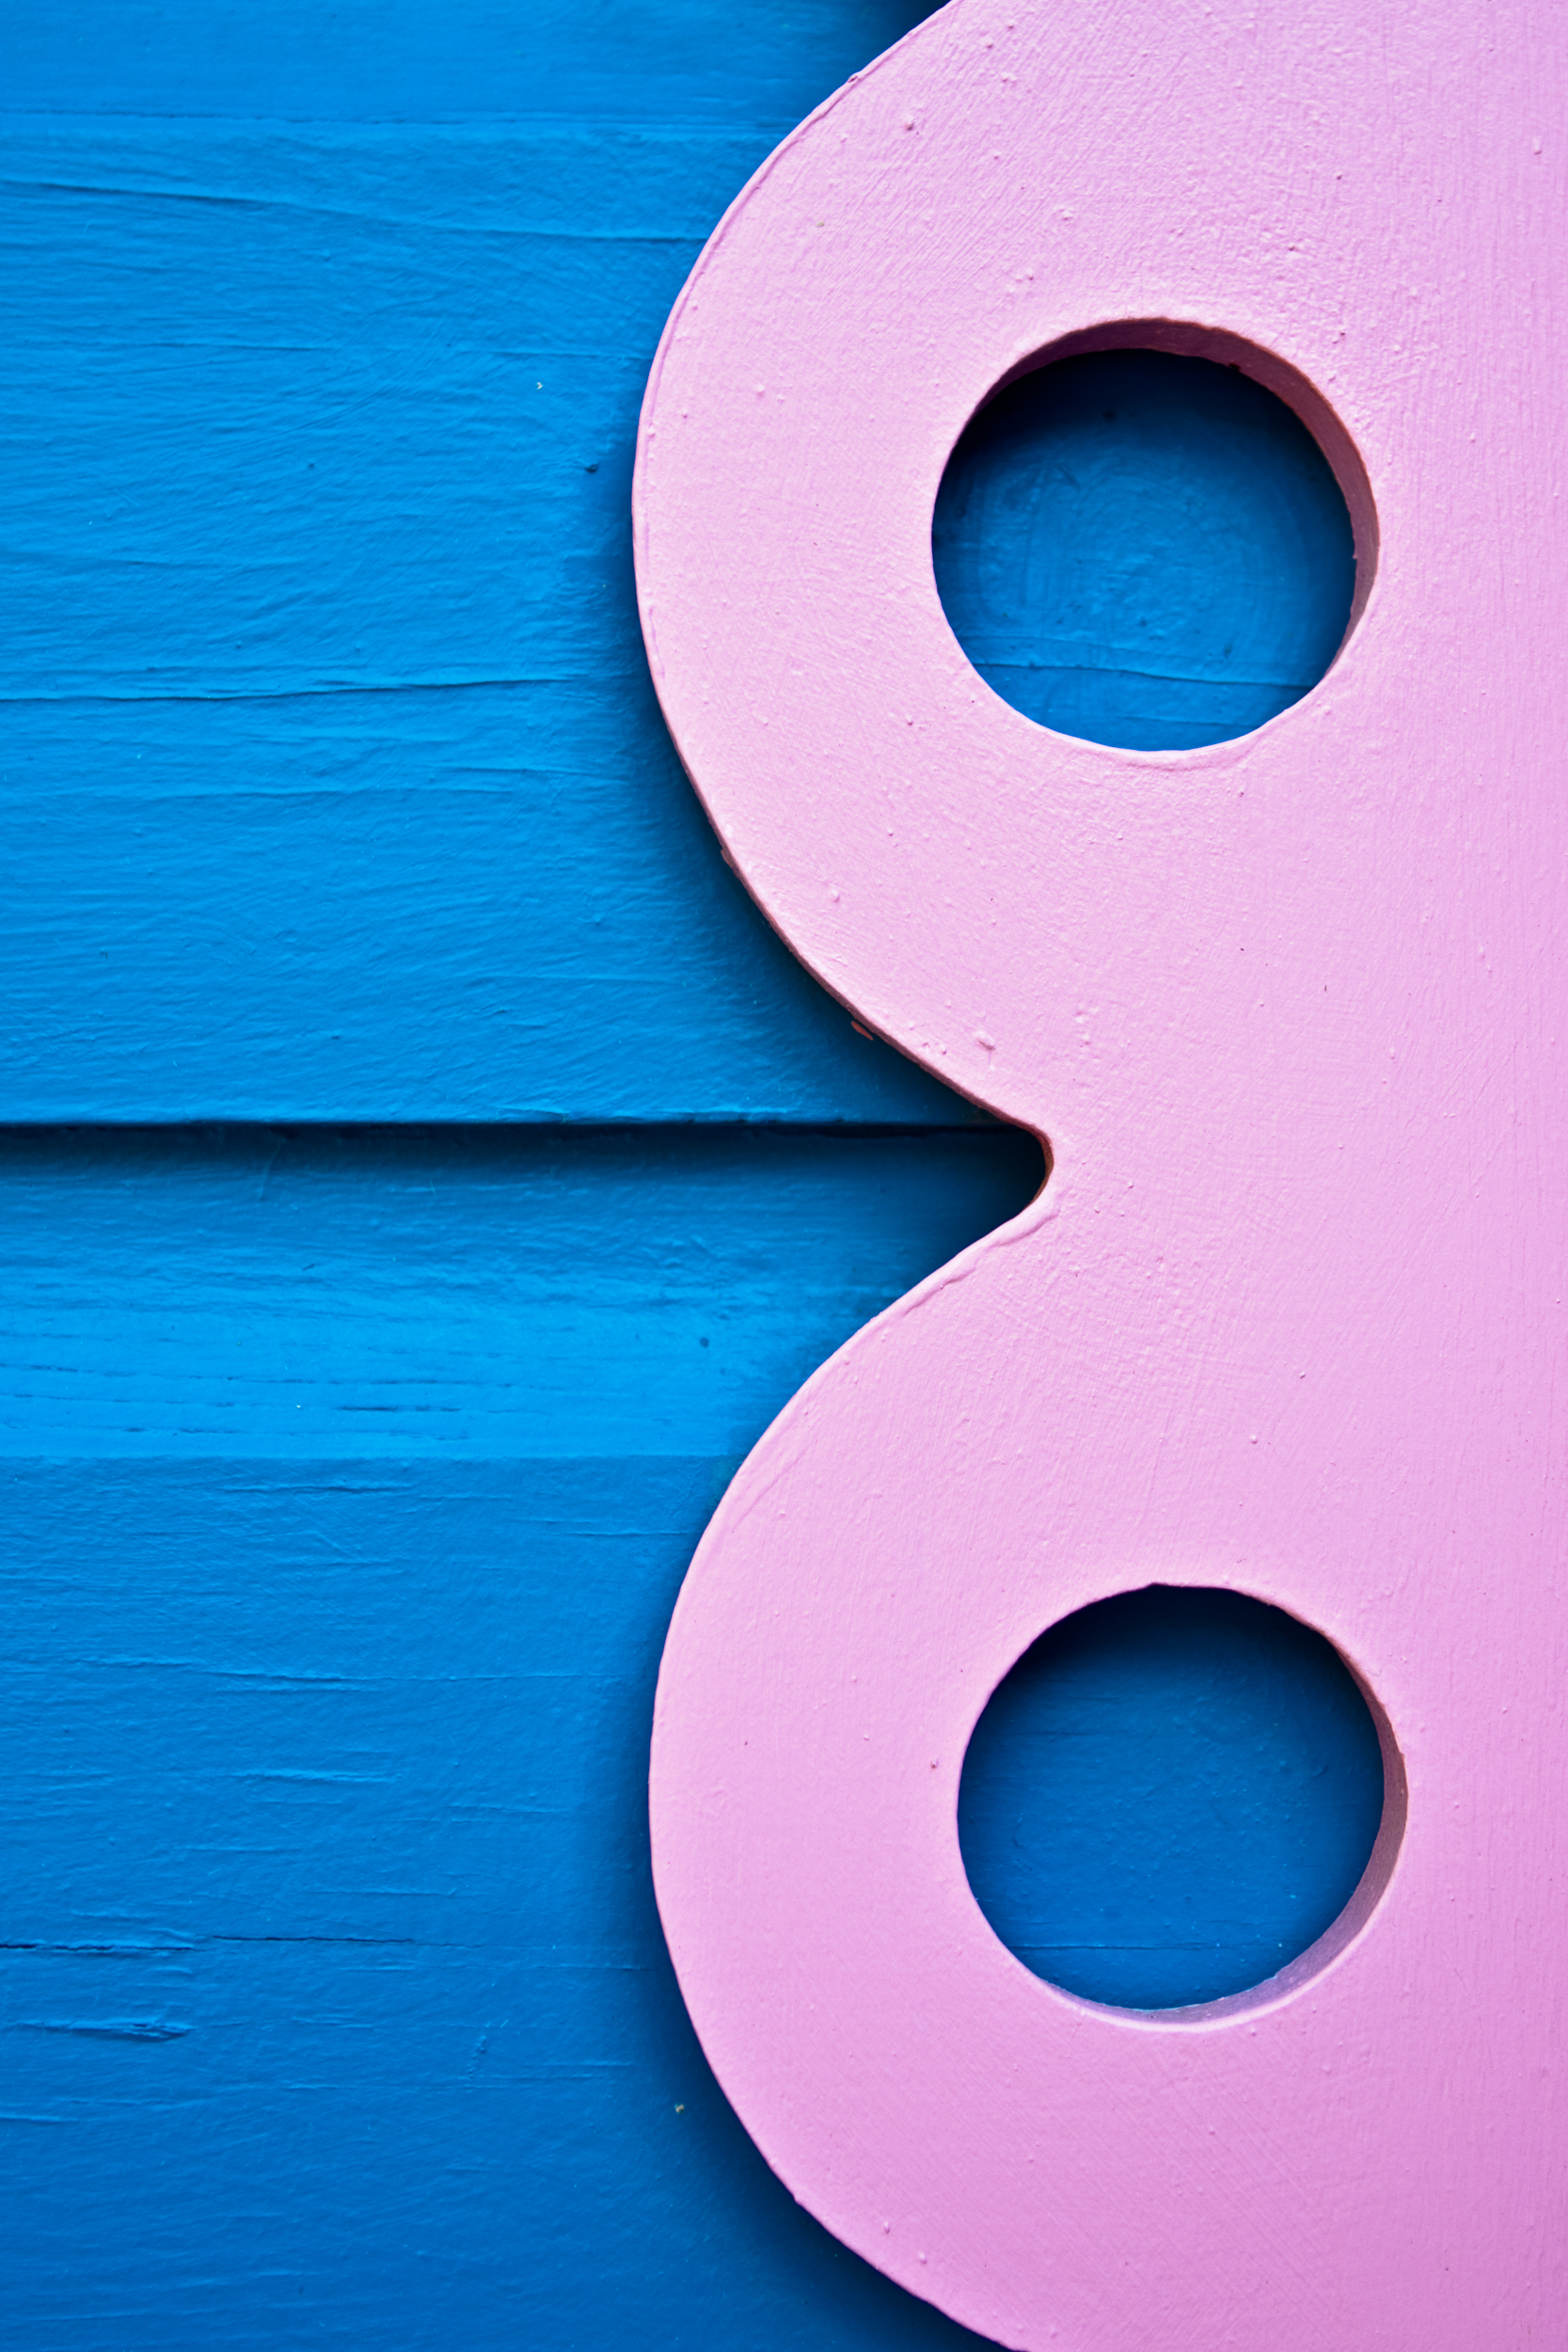 Wood details from a Caribbean house with pink circles and a blue background.